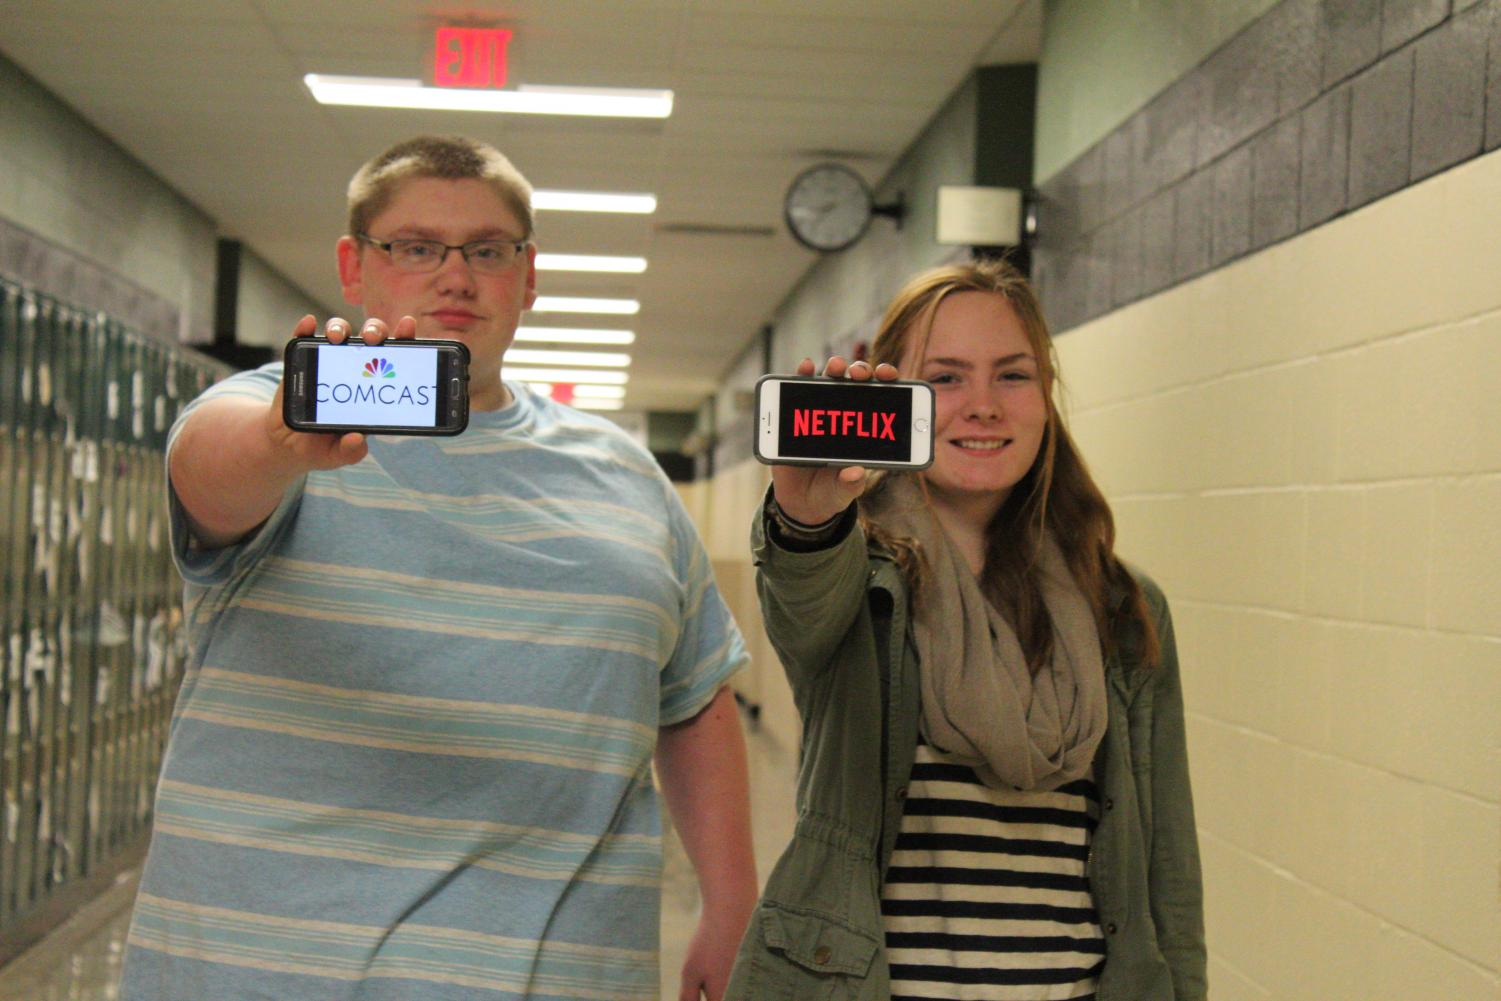 Displaying their preferences of cable TV or Netflix are Colby Shingler (11) and Carlee Jackson (11).